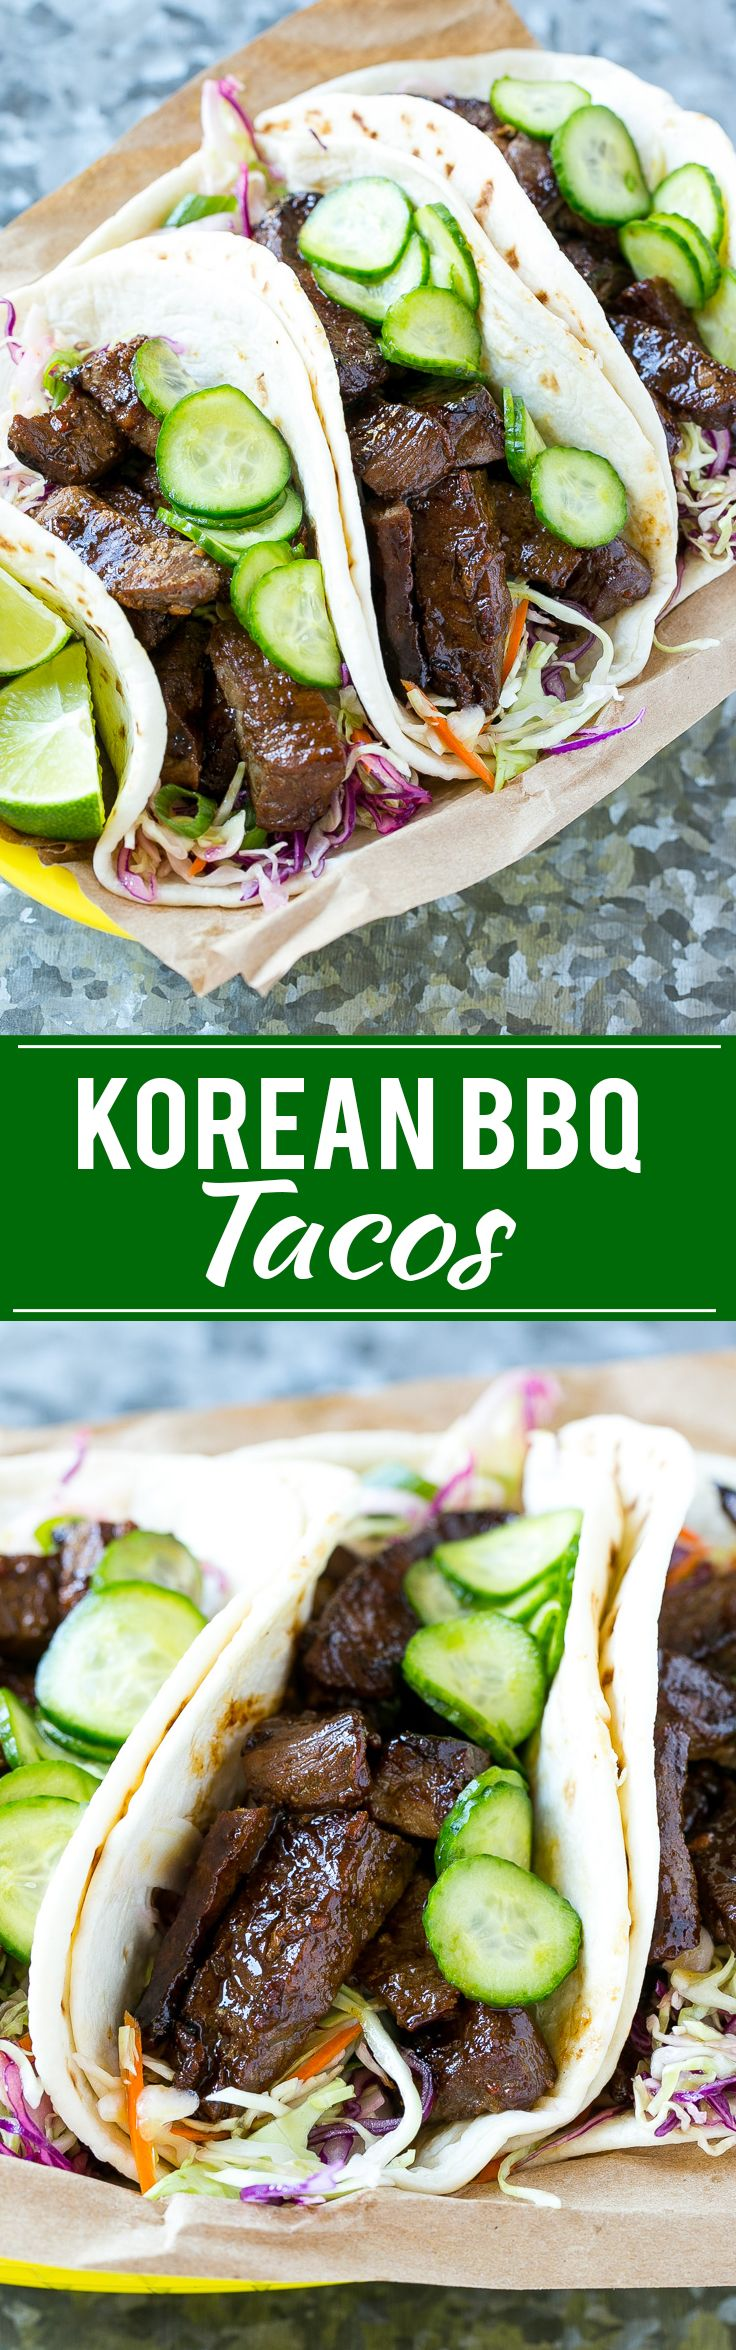 This recipe for Korean BBQ Tacos is marinated and seared beef layered with cabbage slaw and marinated cucumbers, all tucked into…